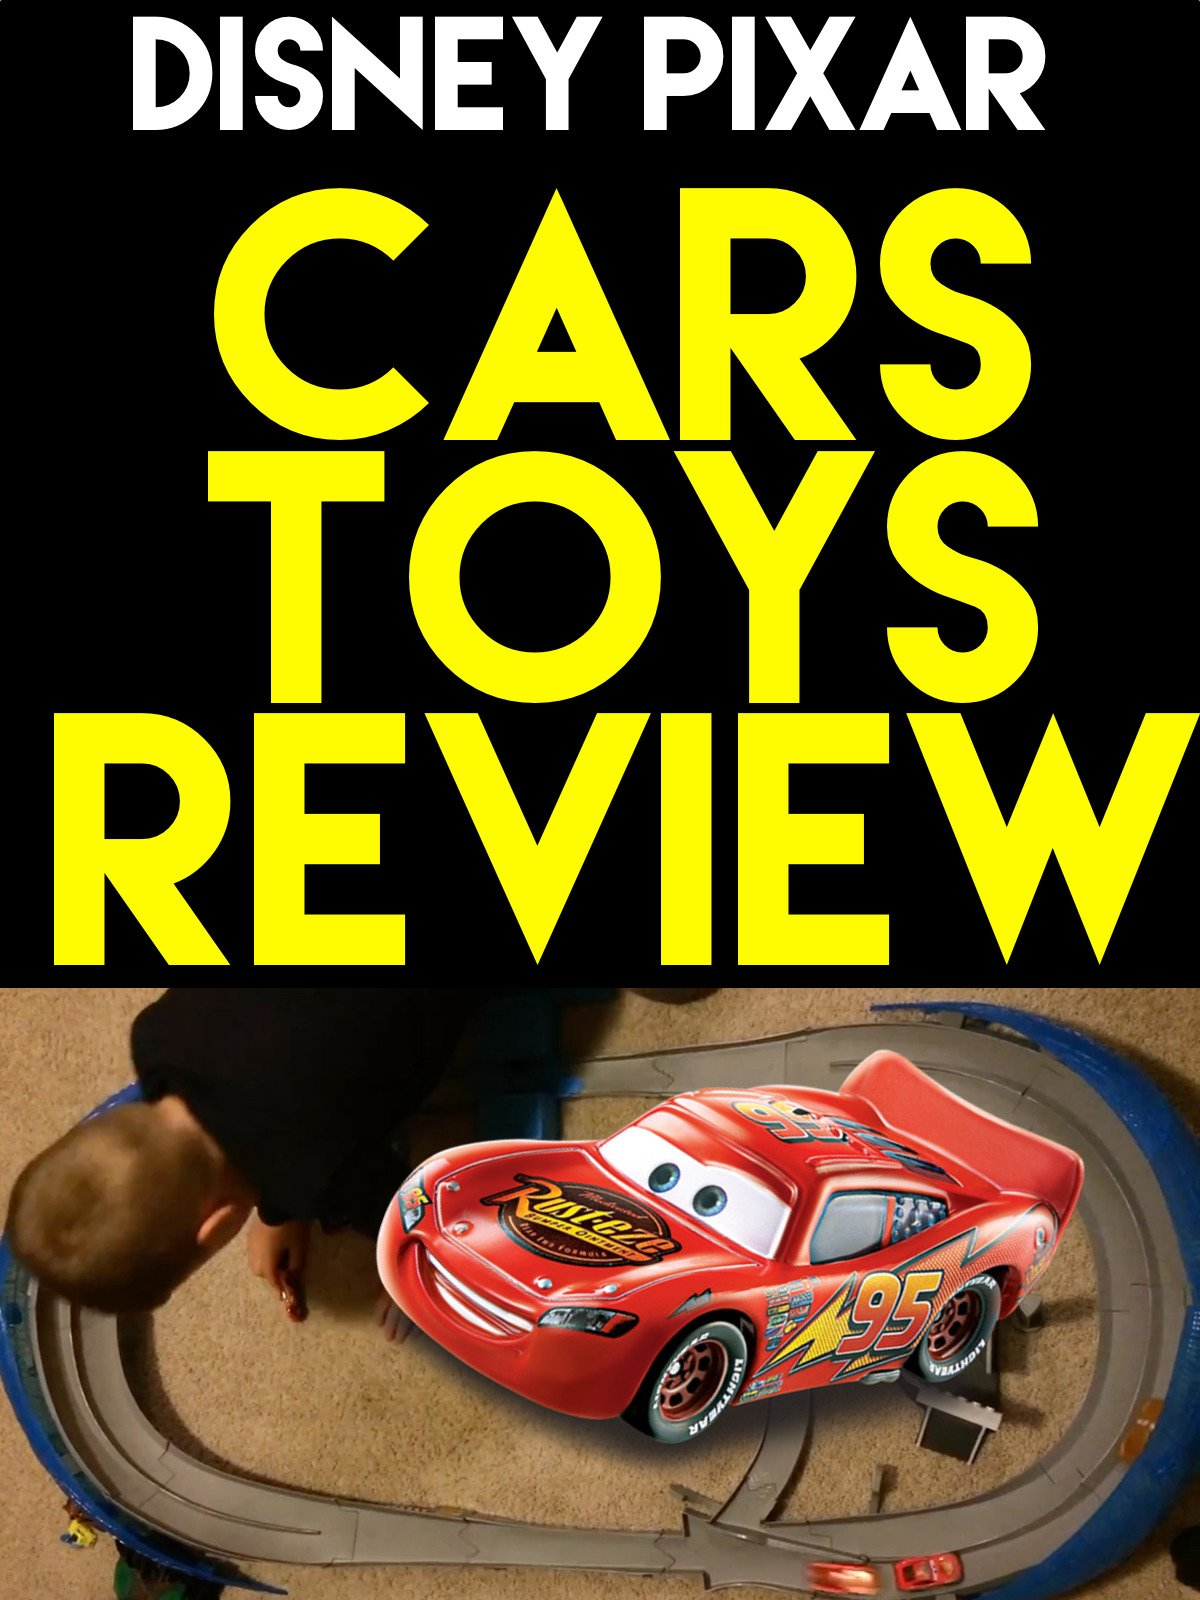 Review: Disney Pixar Cars Toys Review